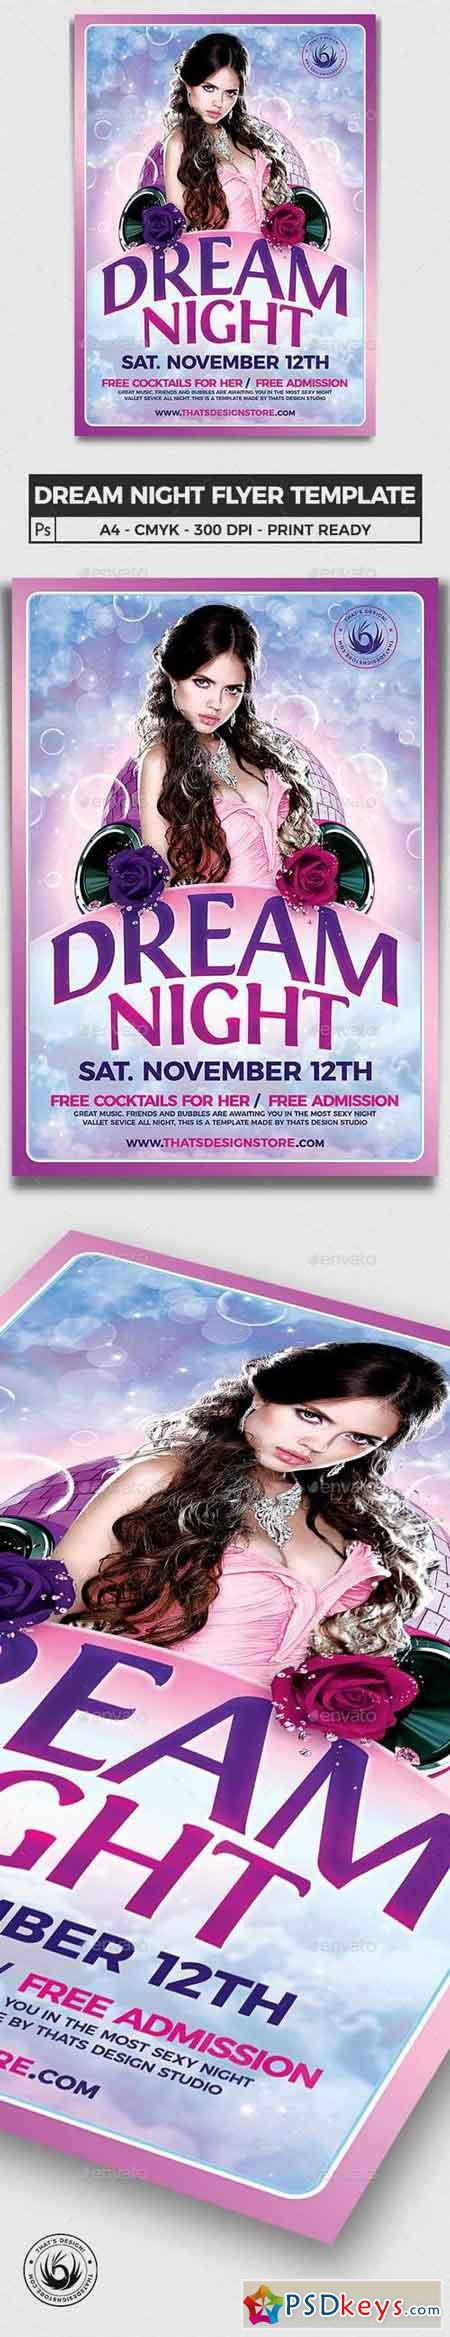 Dream Night Flyer Template 15331912